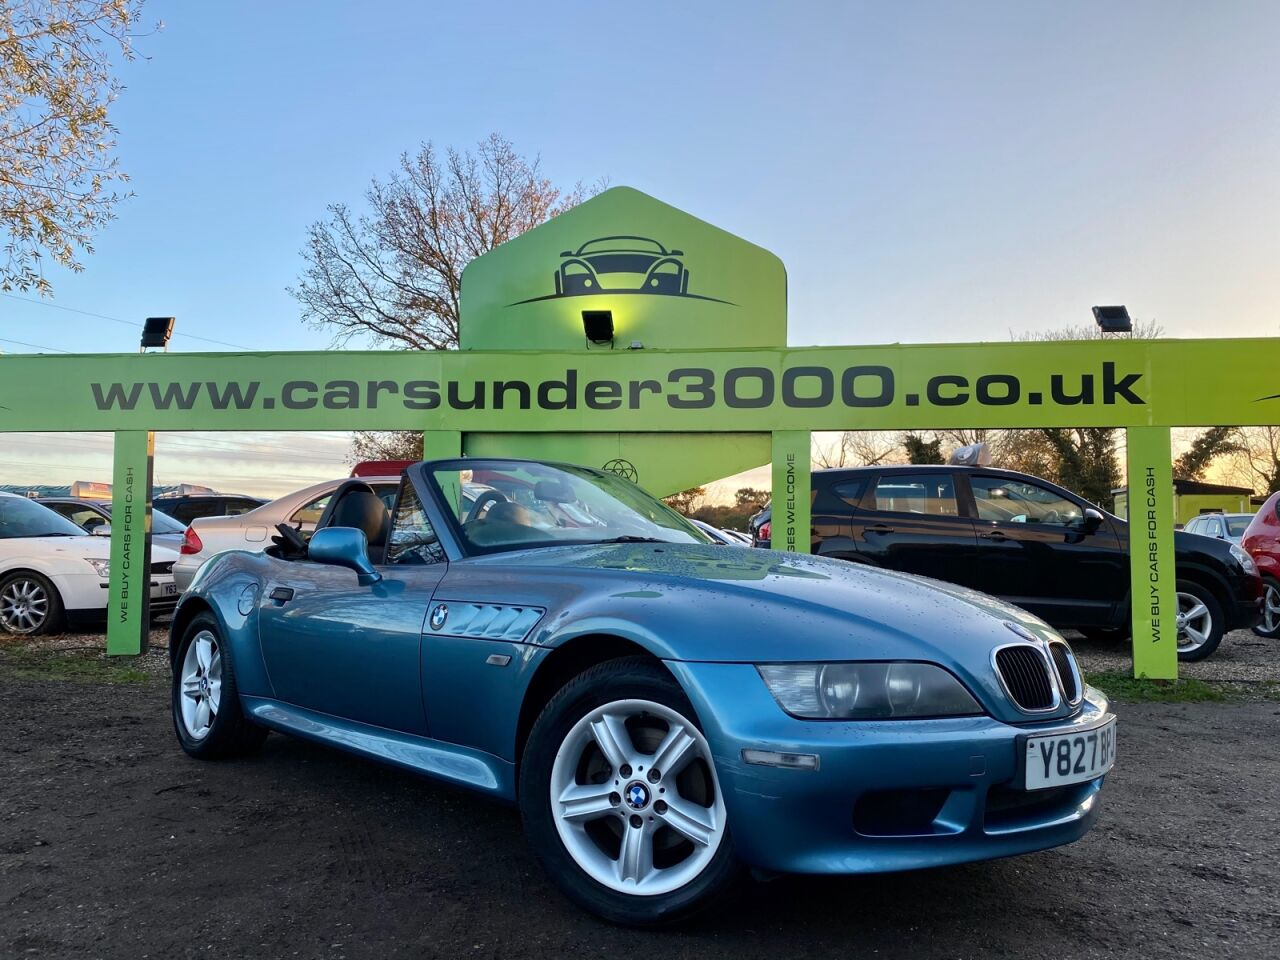 2001 Blue Bmw Z3 Z3 Roadster 5000 Rayleigh Cars Under 3000